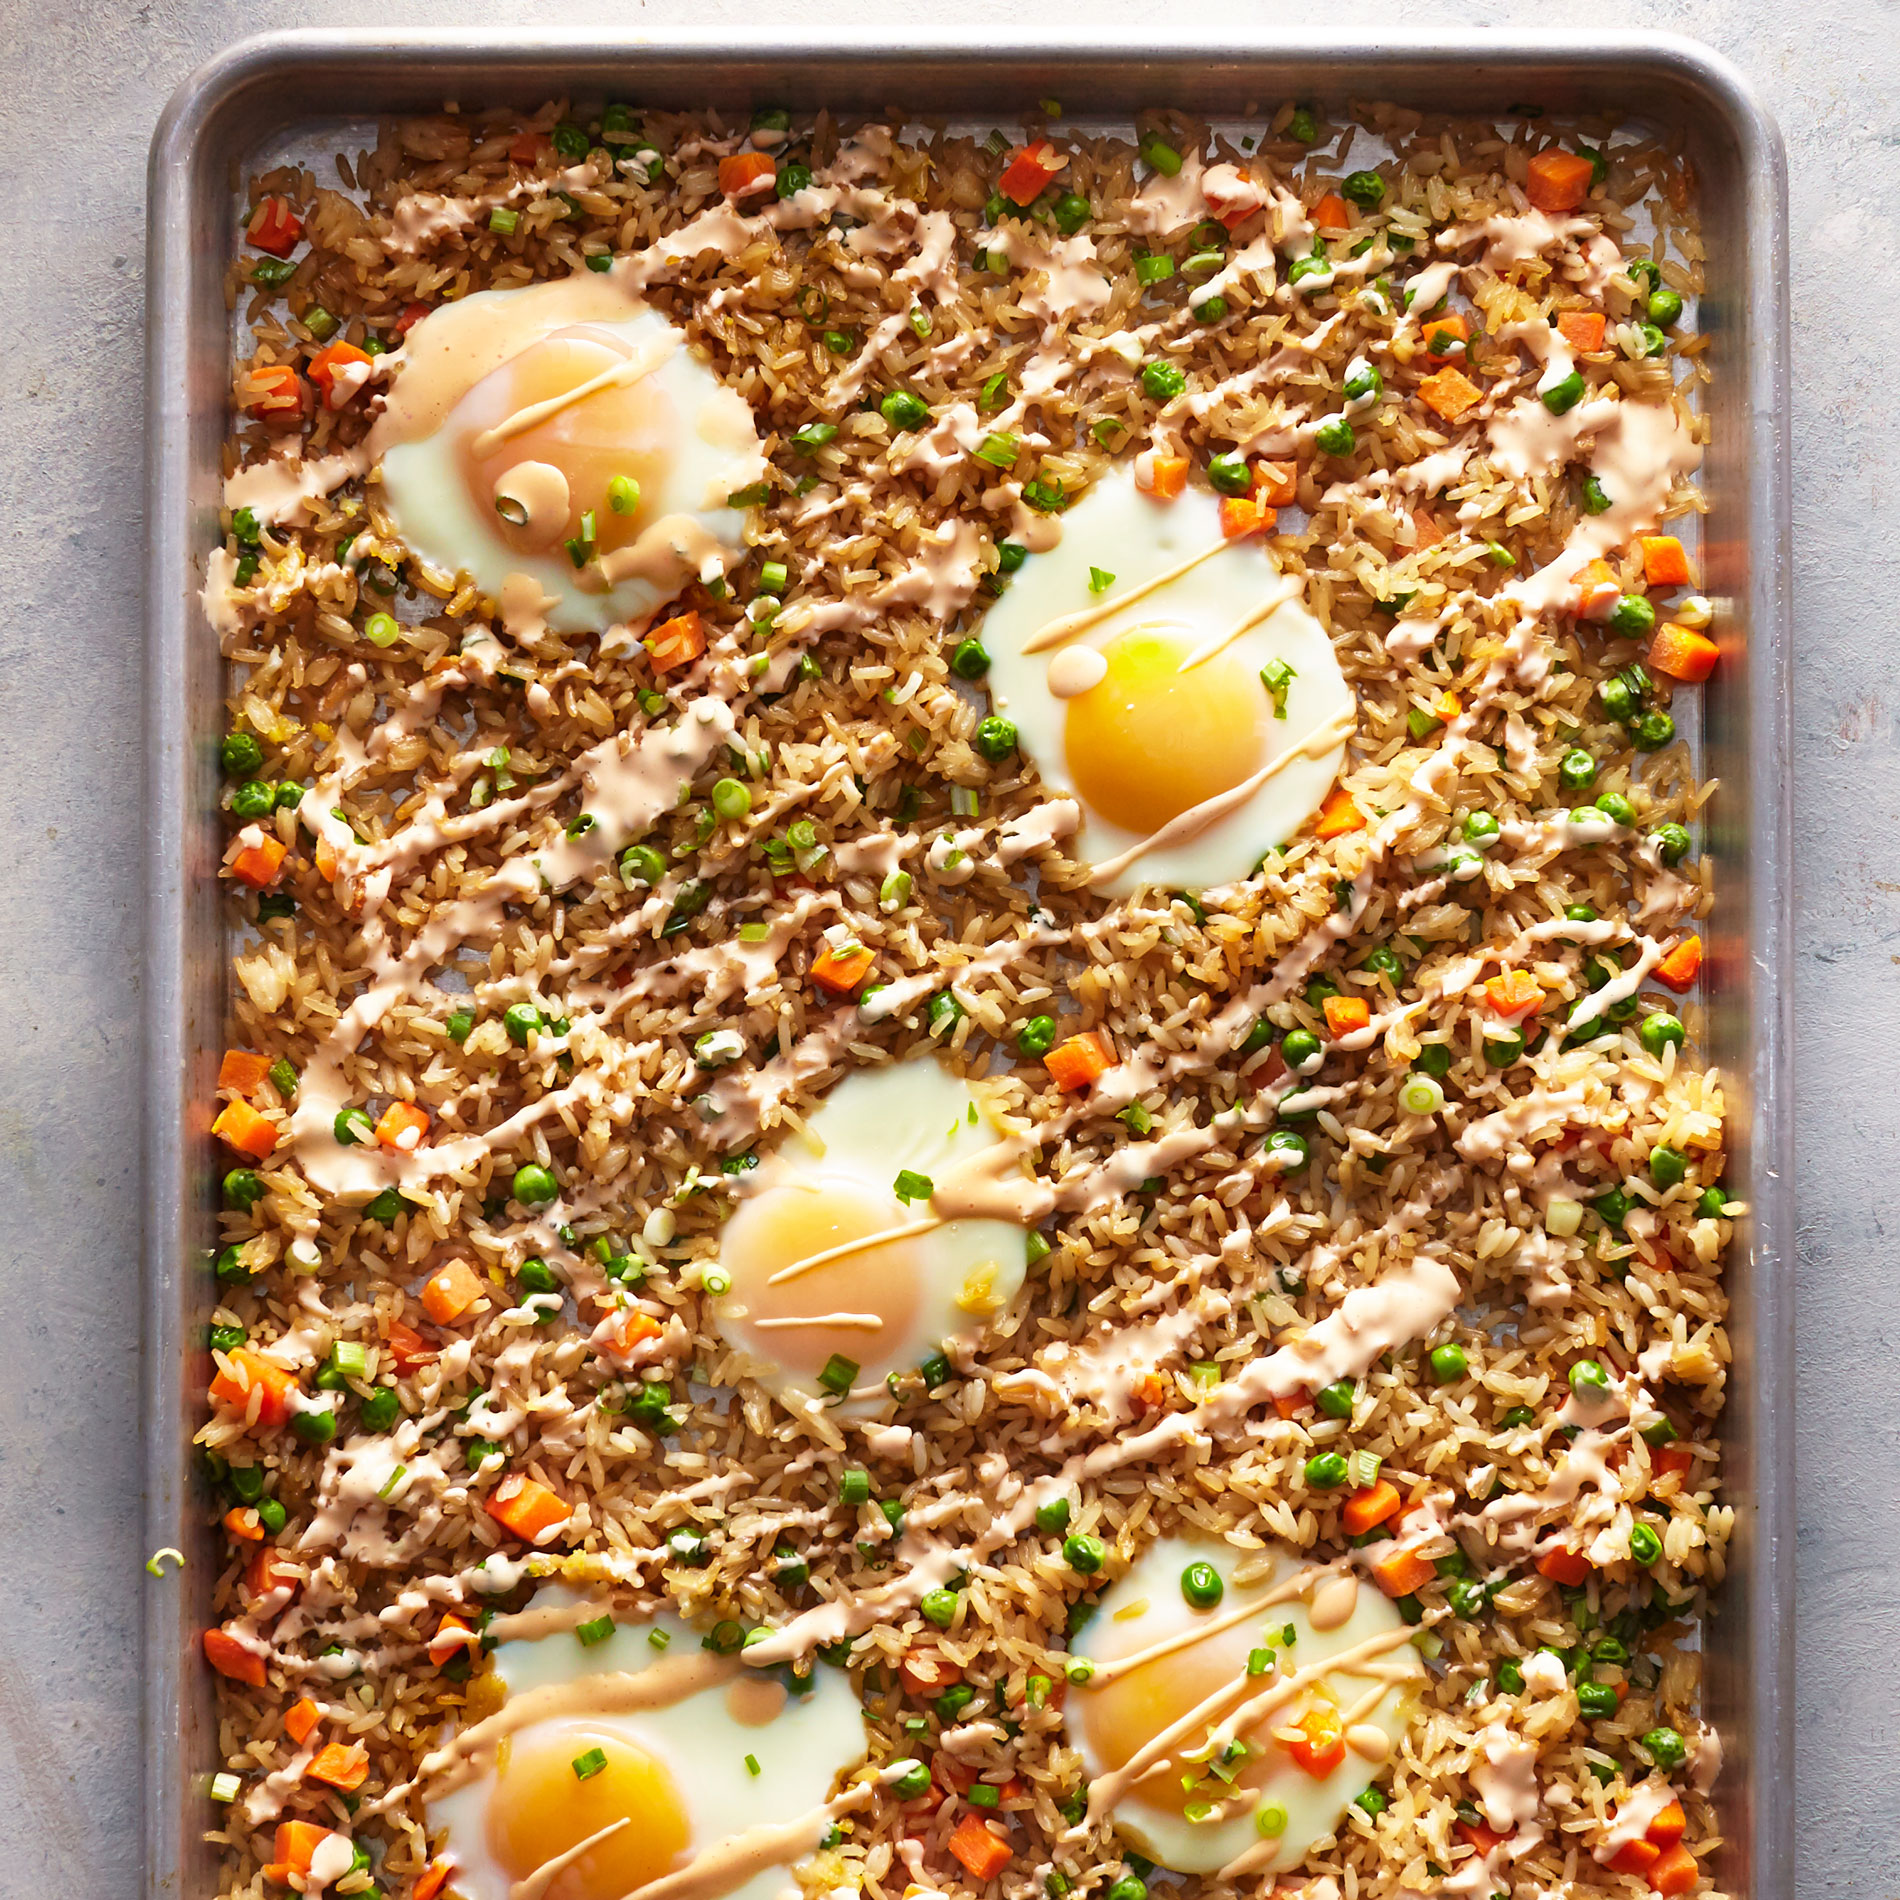 Sheet Pan 101: Everything You Need to Know About Buying and Using this Kitchen Workhorse